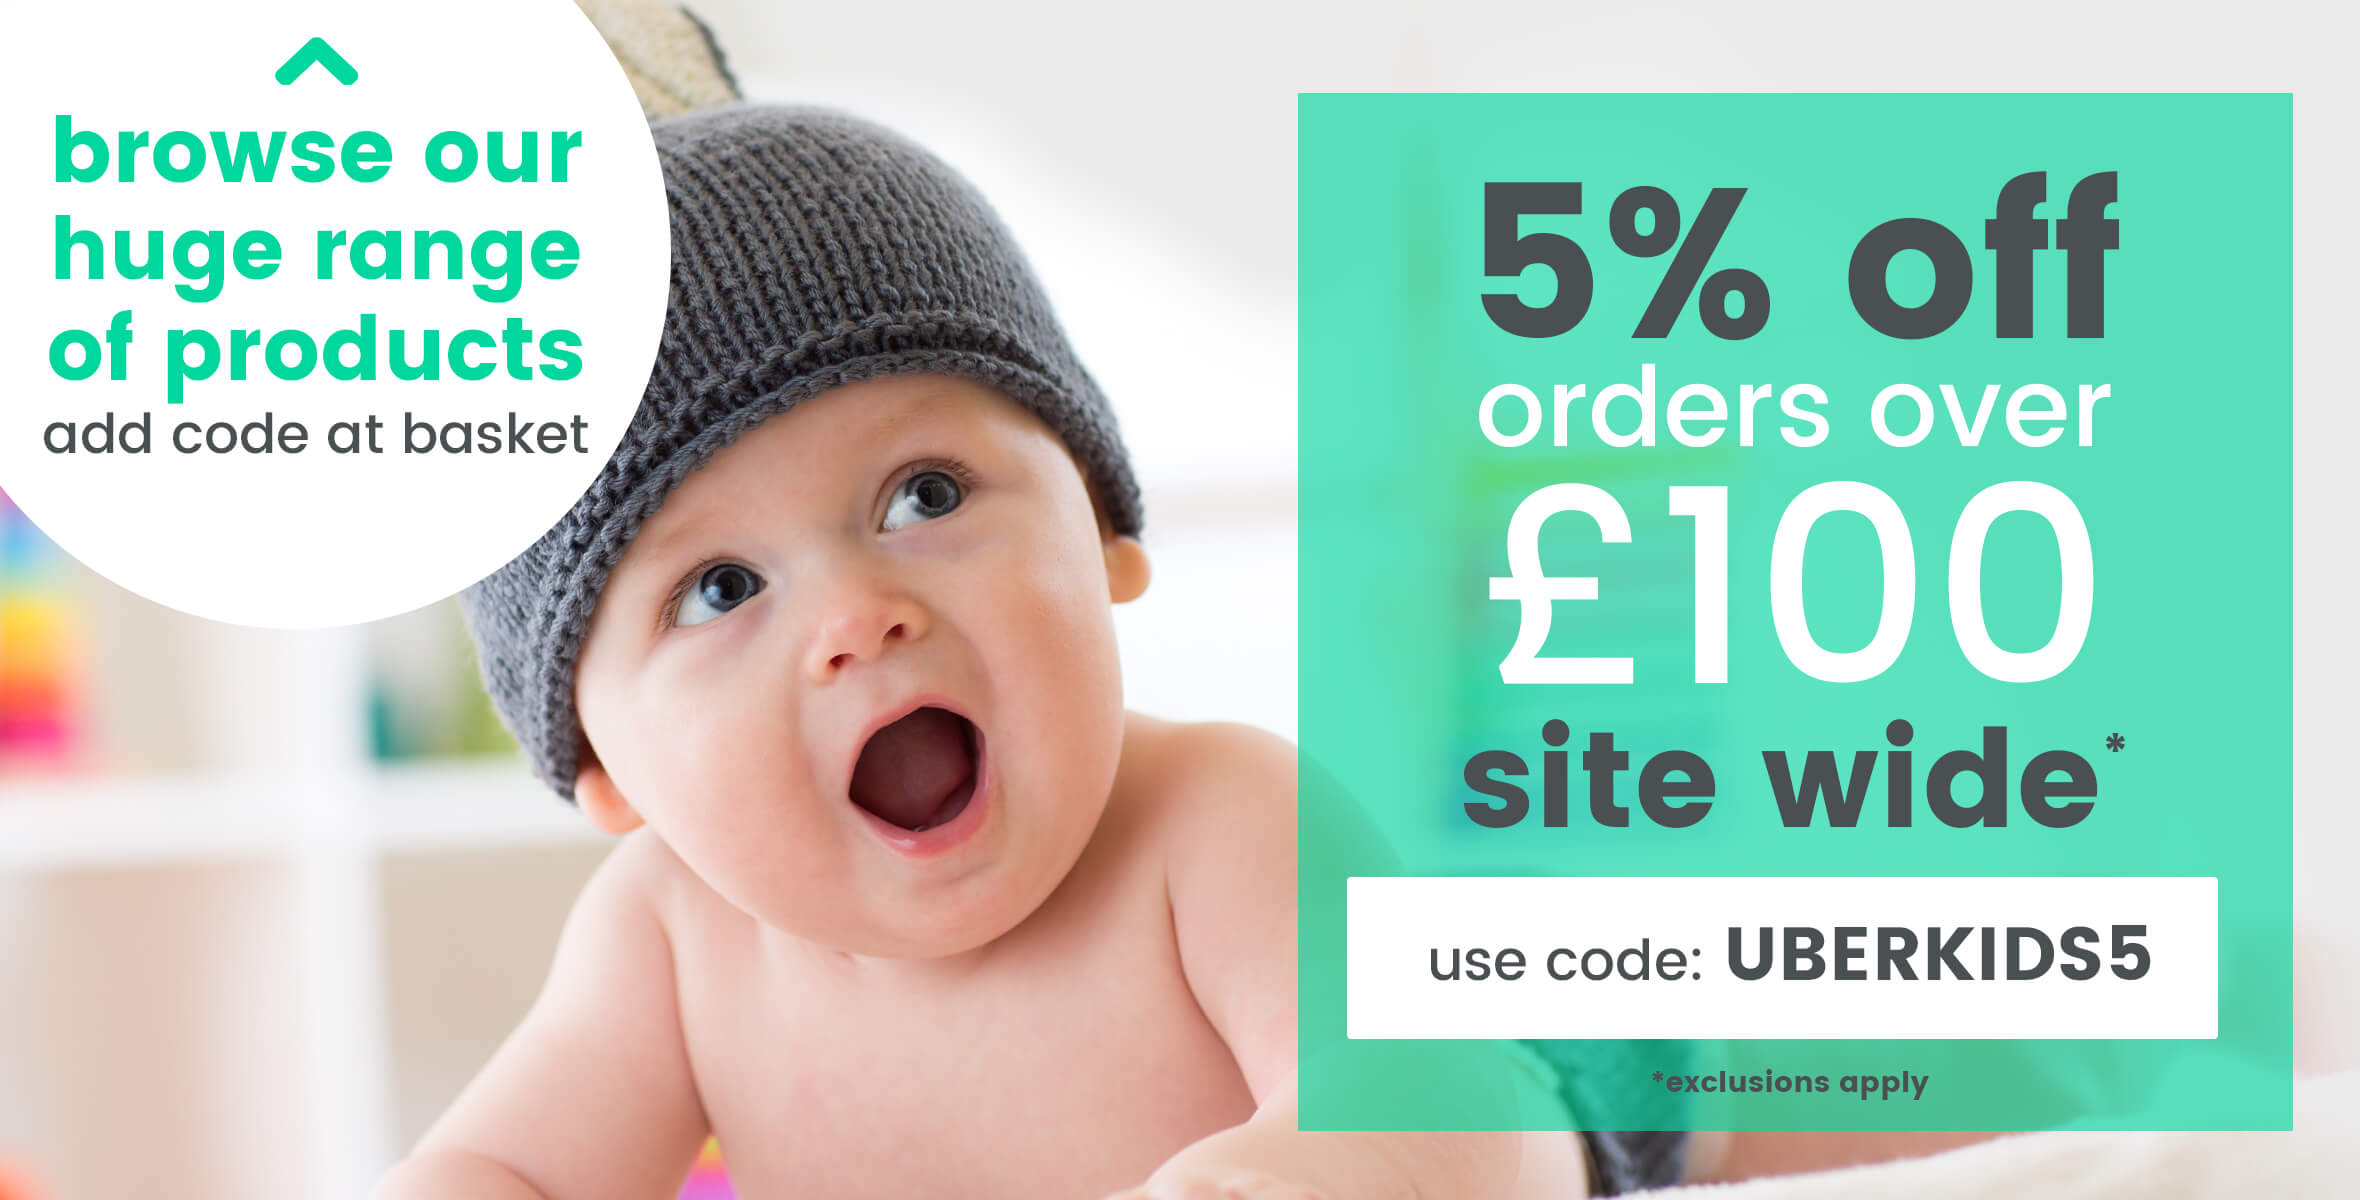 5% Off Orders Over £100